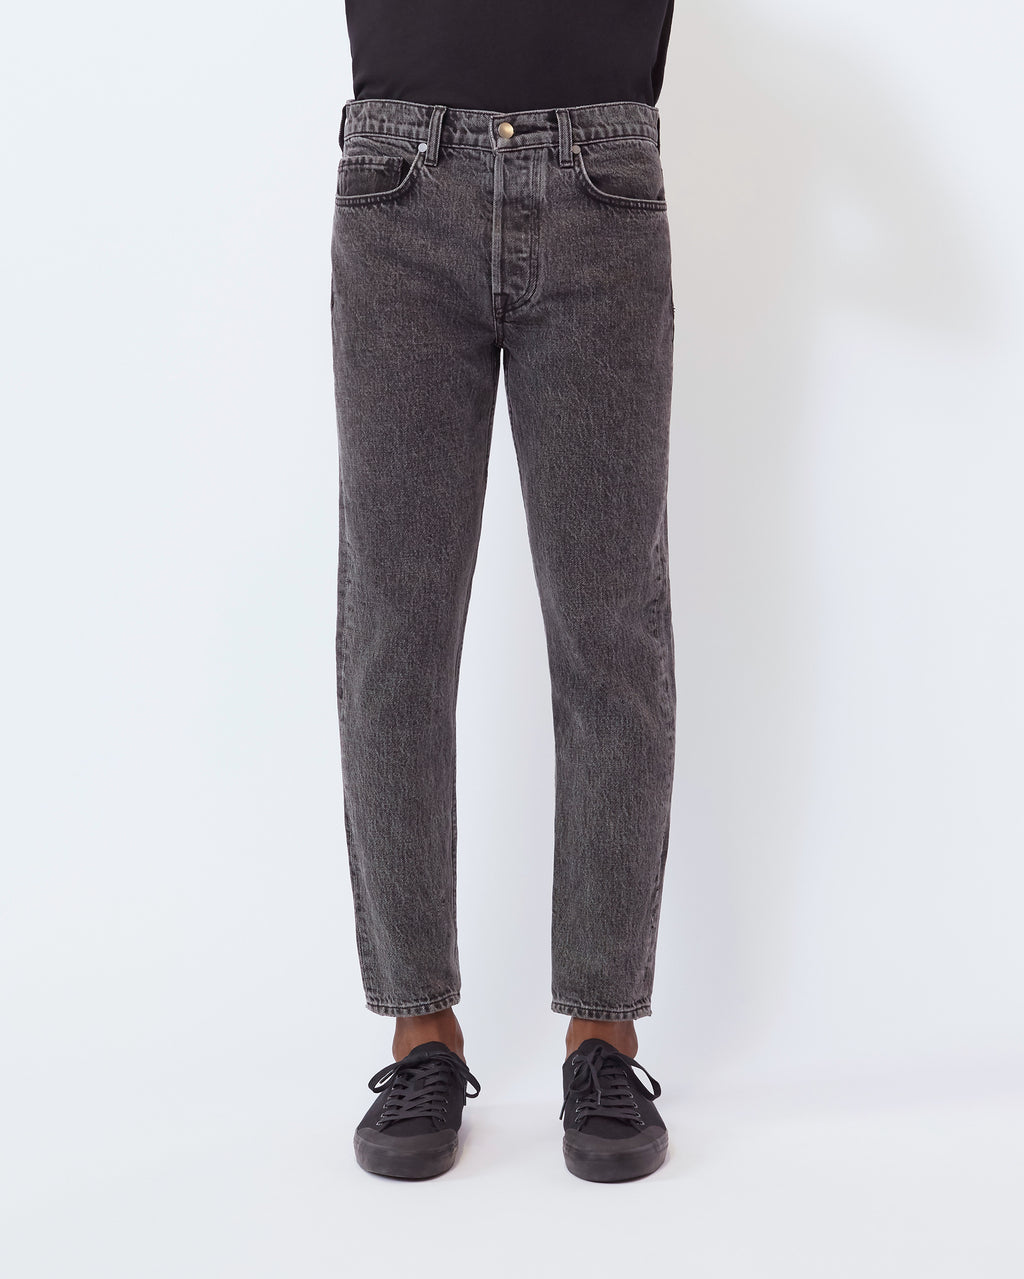 The Modern Taper Jean in Vintage Black